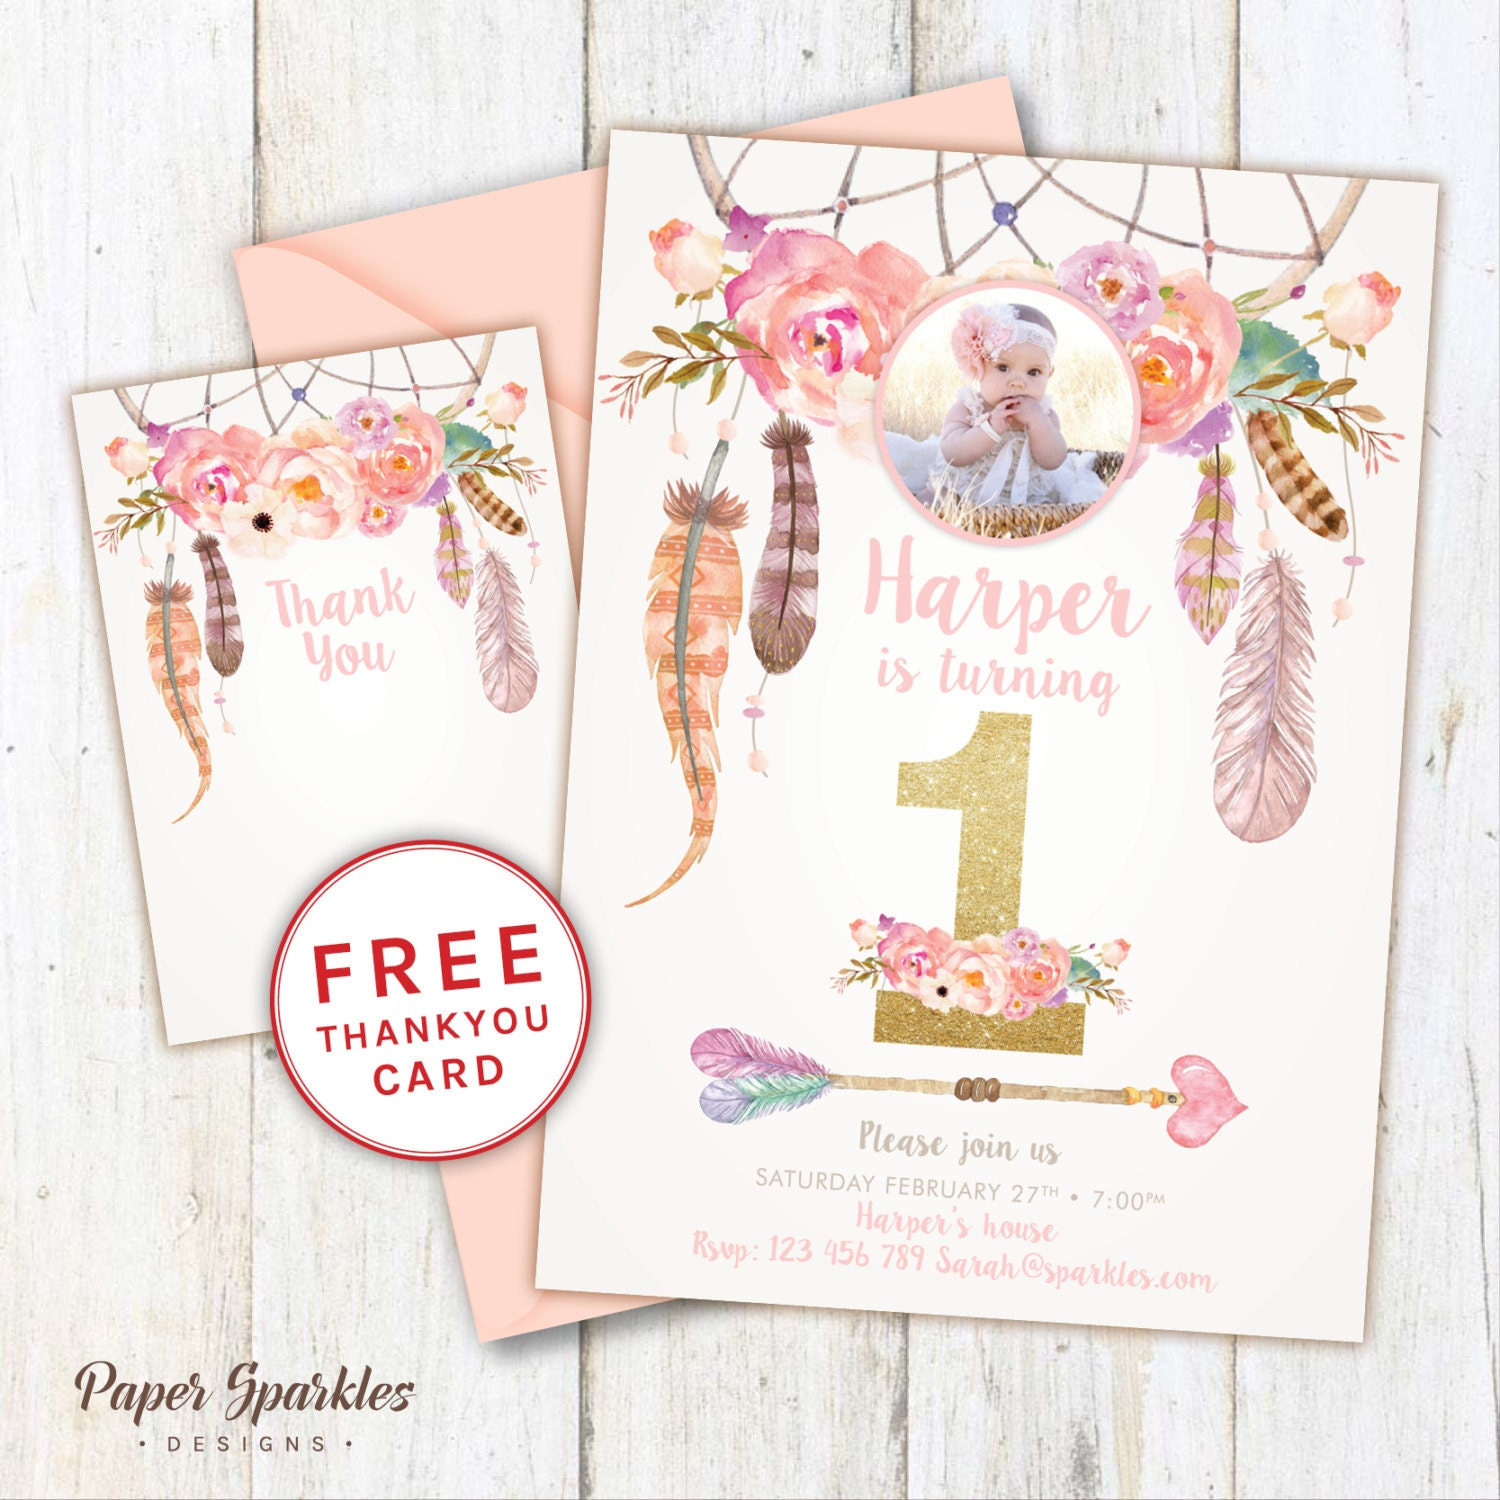 Design Your Own Engagement Party Invitations is good invitations design